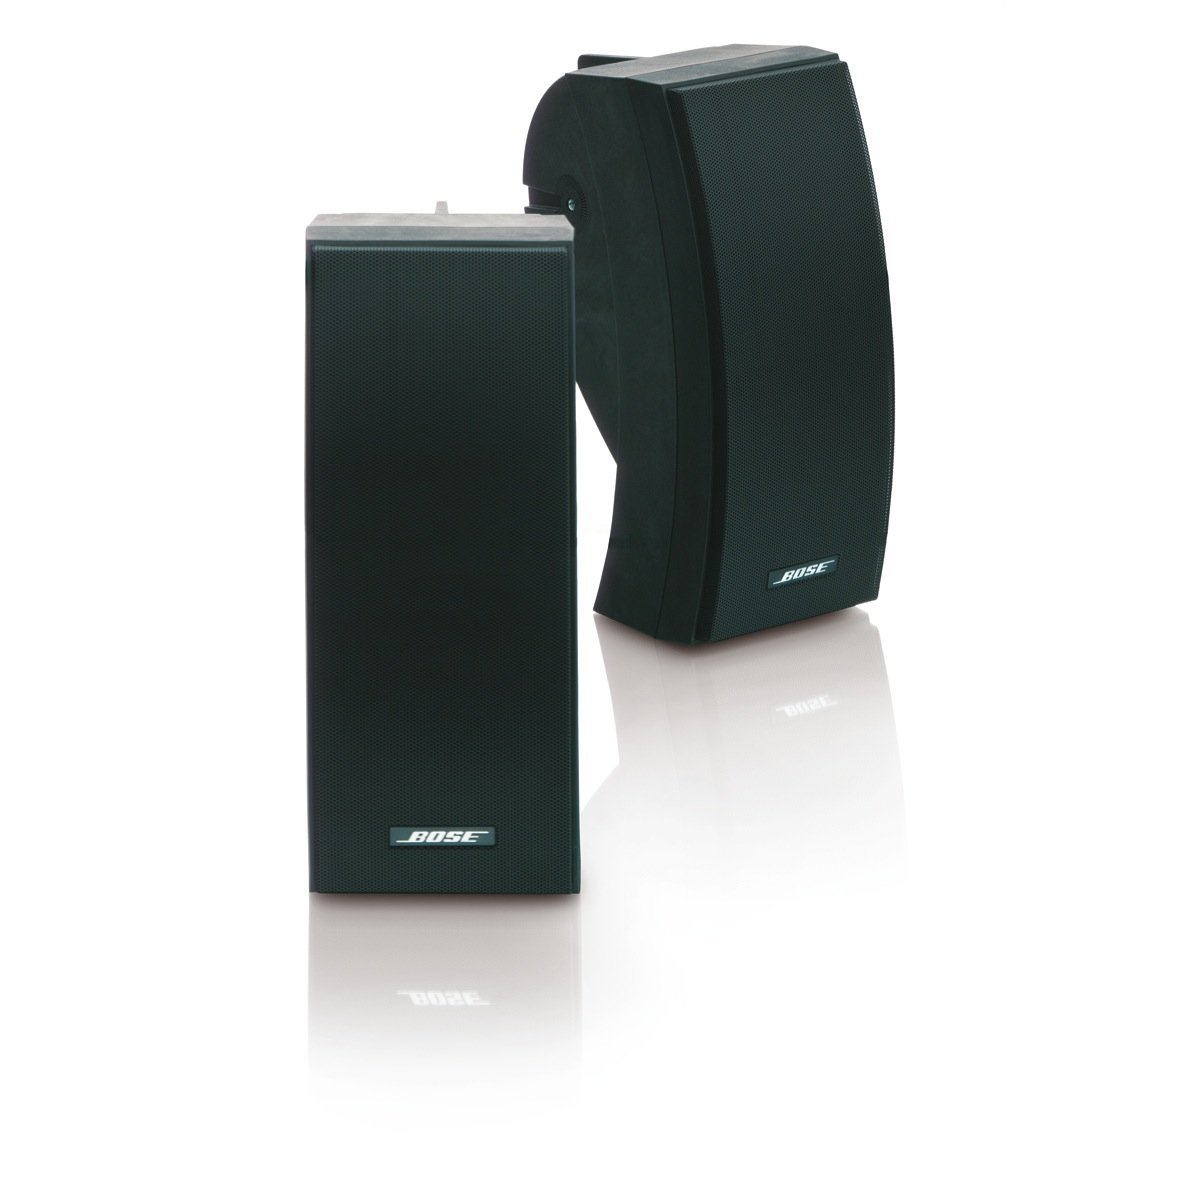 amazon com bose 251 environmental outdoor speakers black home